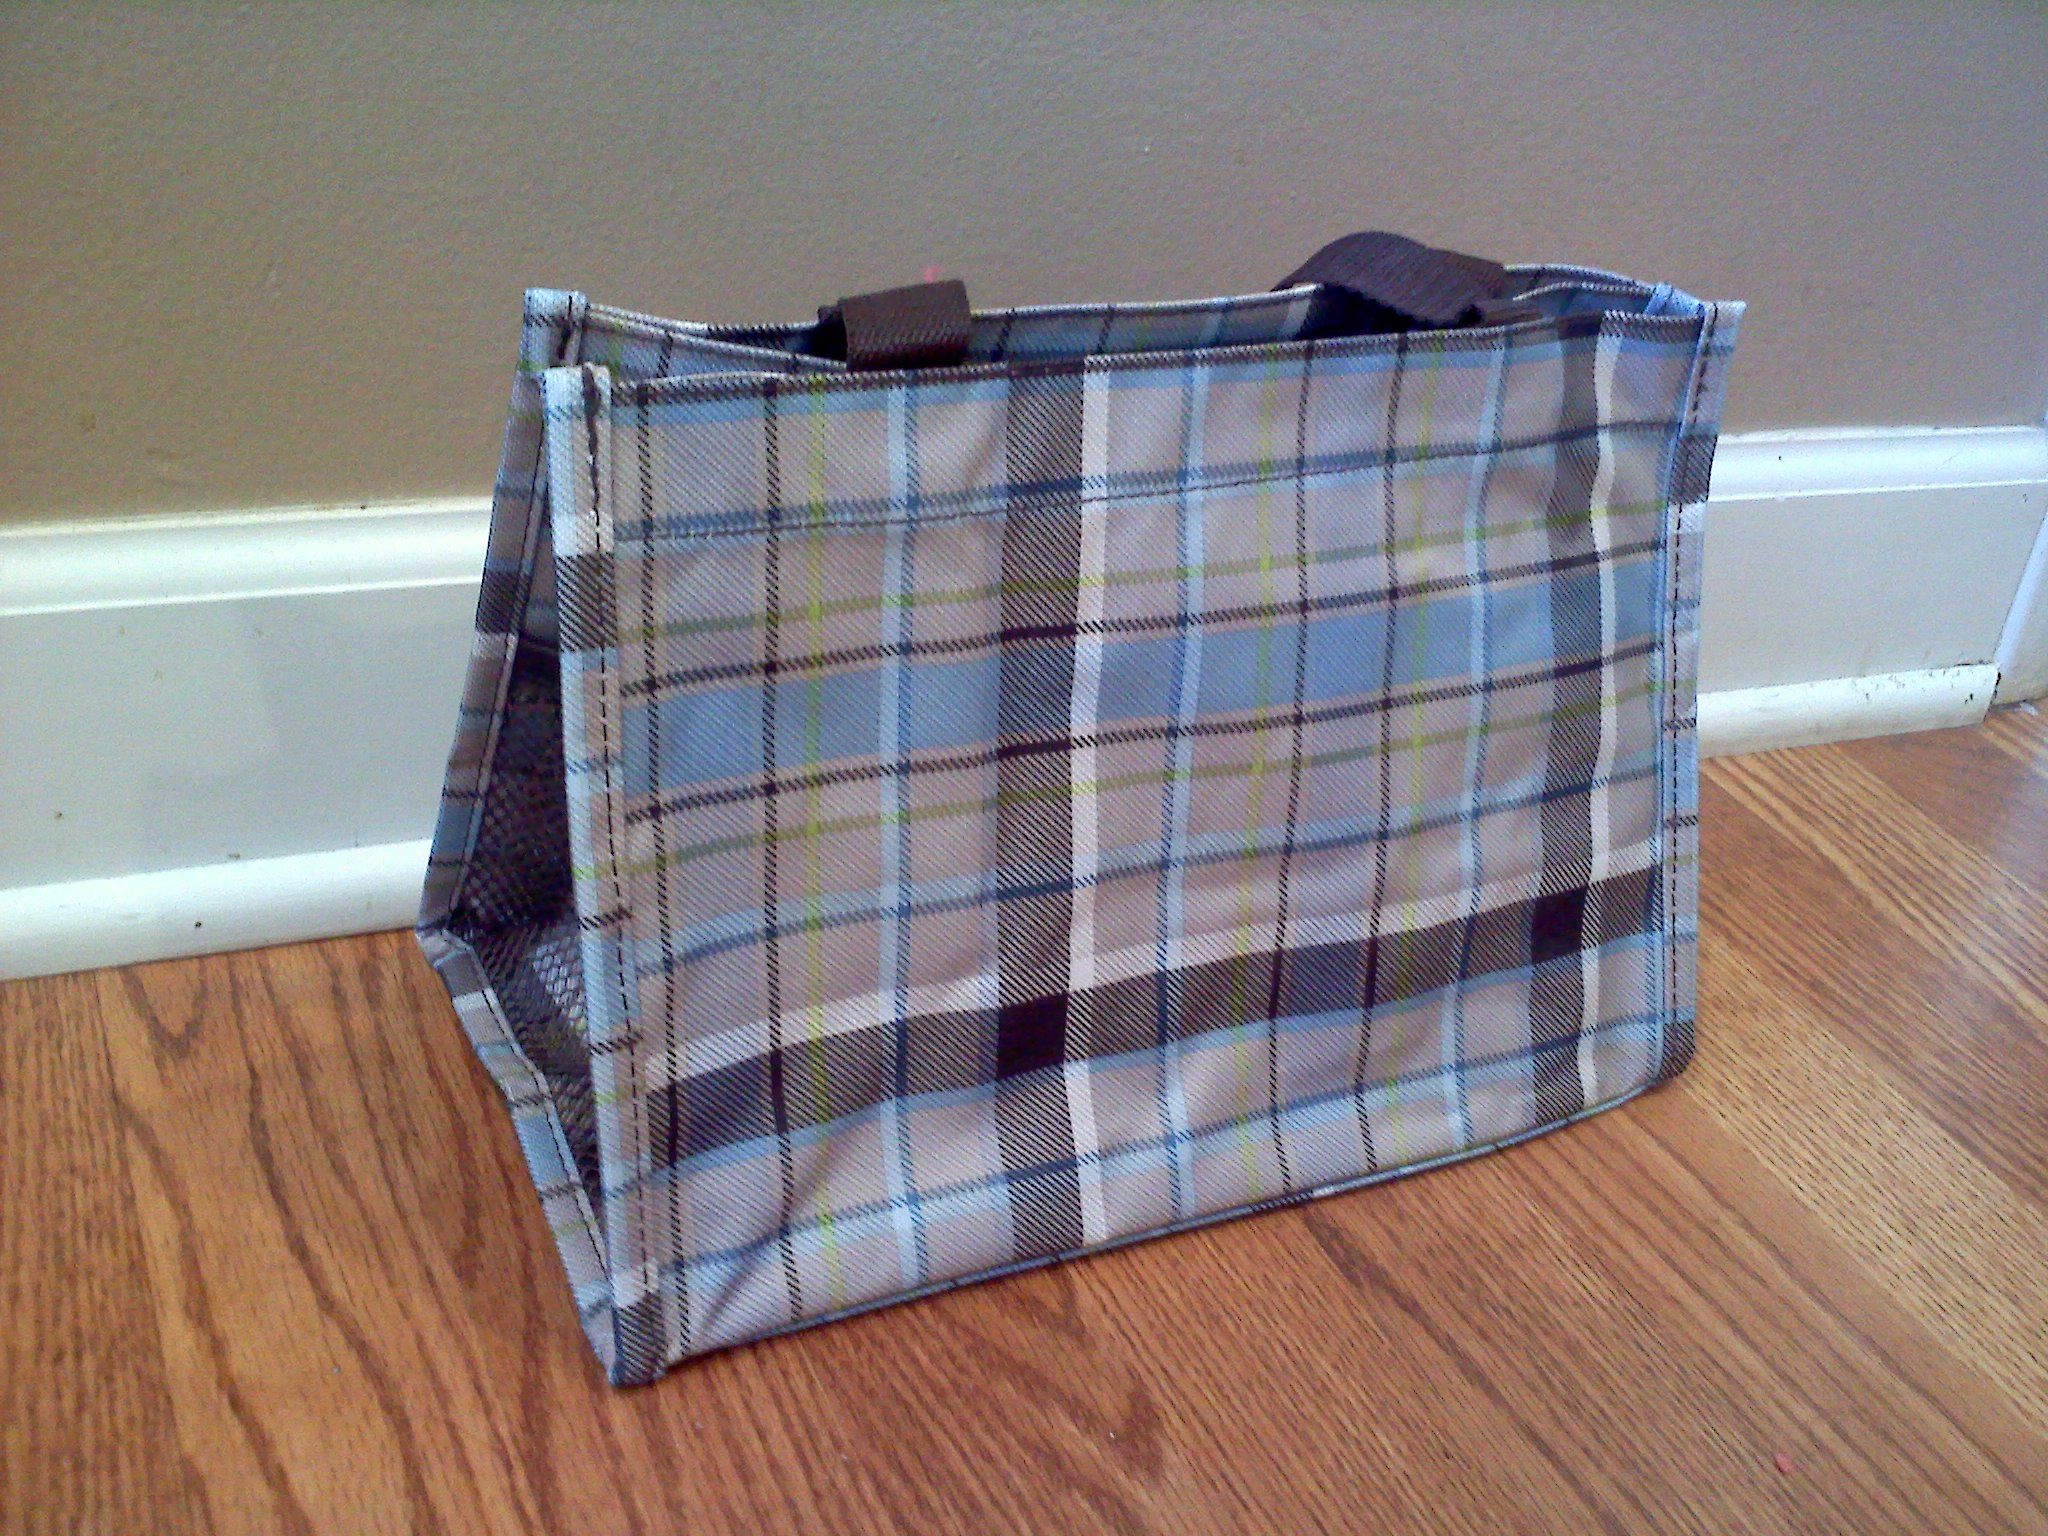 All In One Organizer - Harvest Plaid - $20